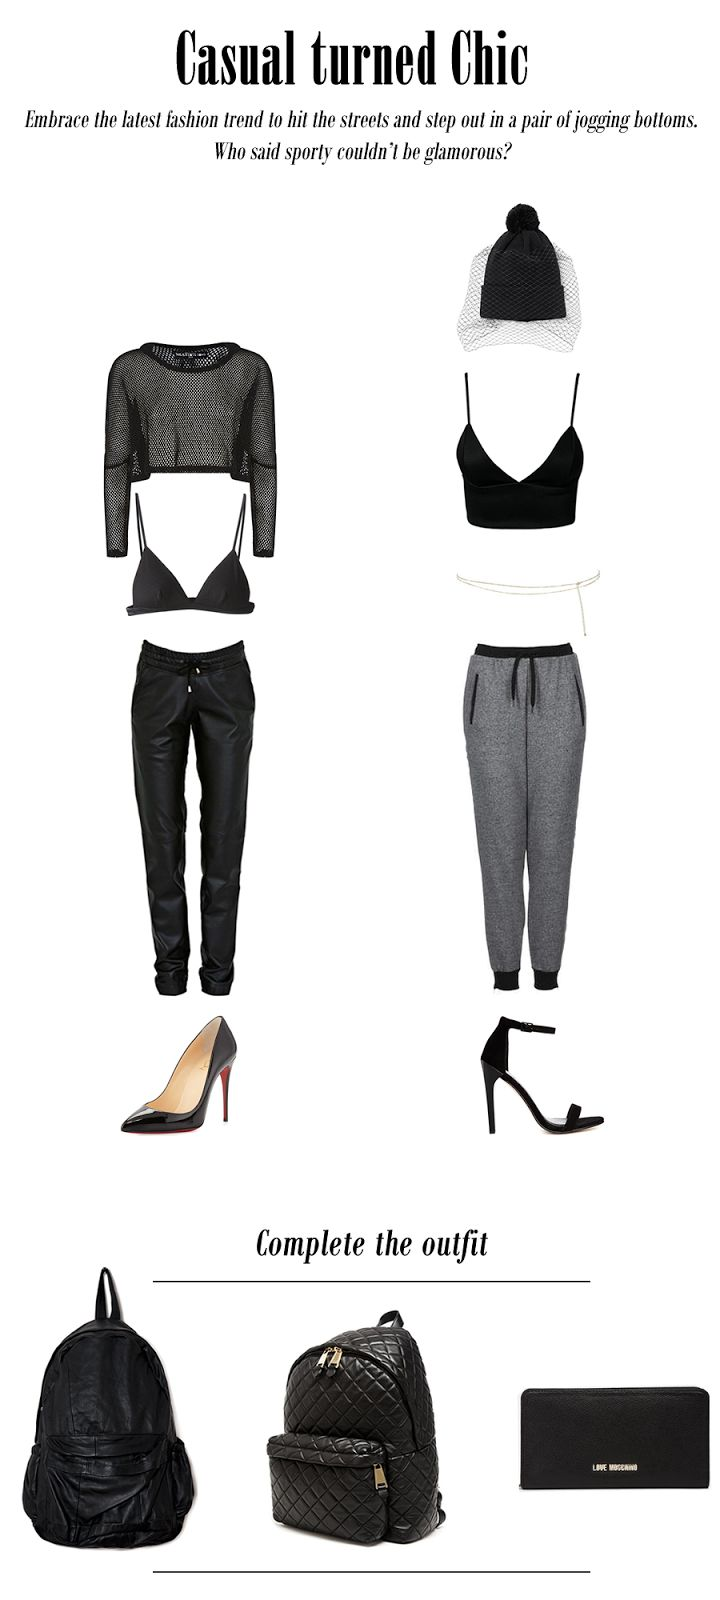 Casual Chic: Jogging bottoms trend